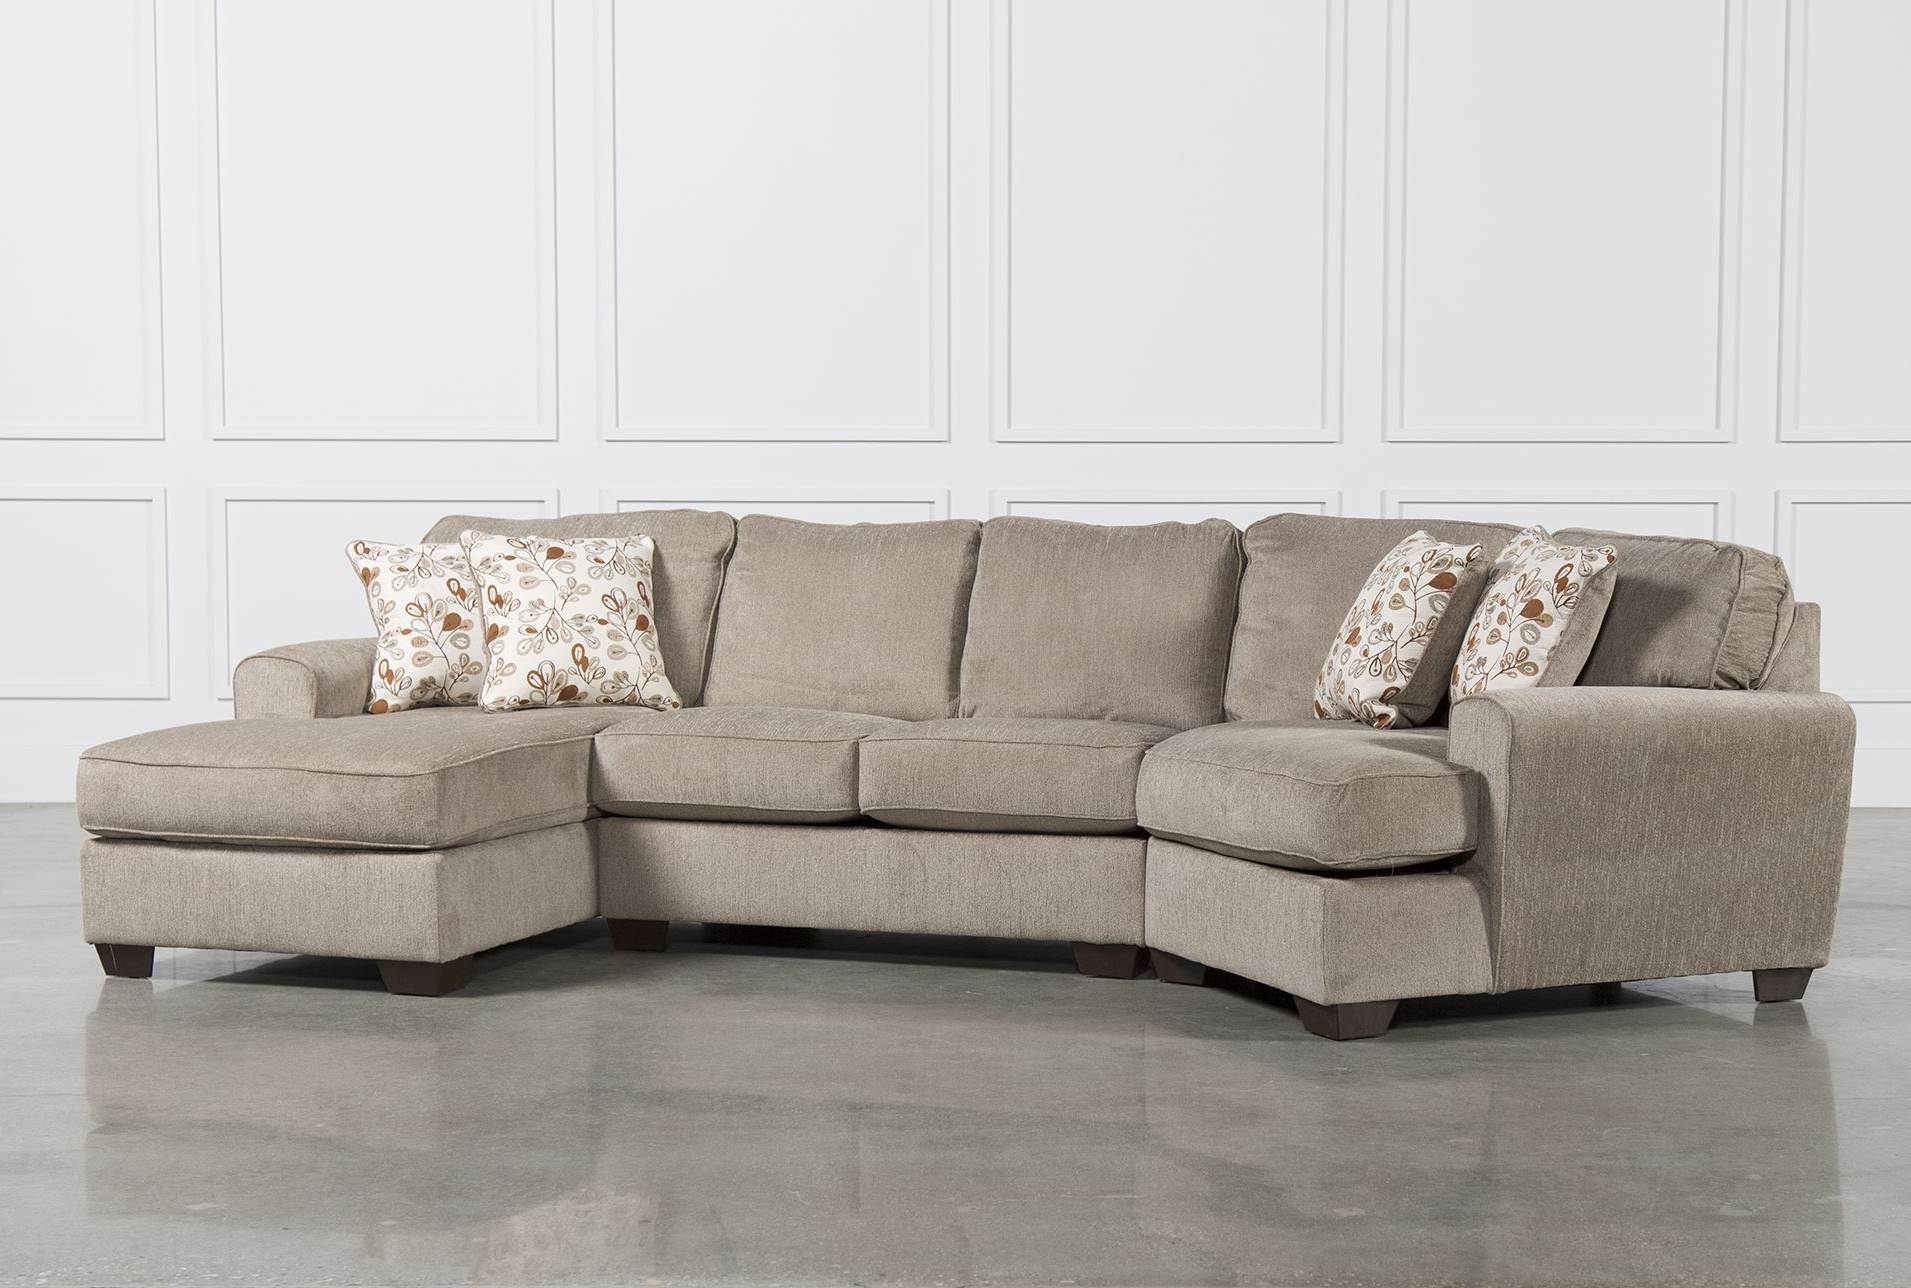 Home Furniture Decoration Within Most Recent Small Couches With Chaise (View 6 of 15)